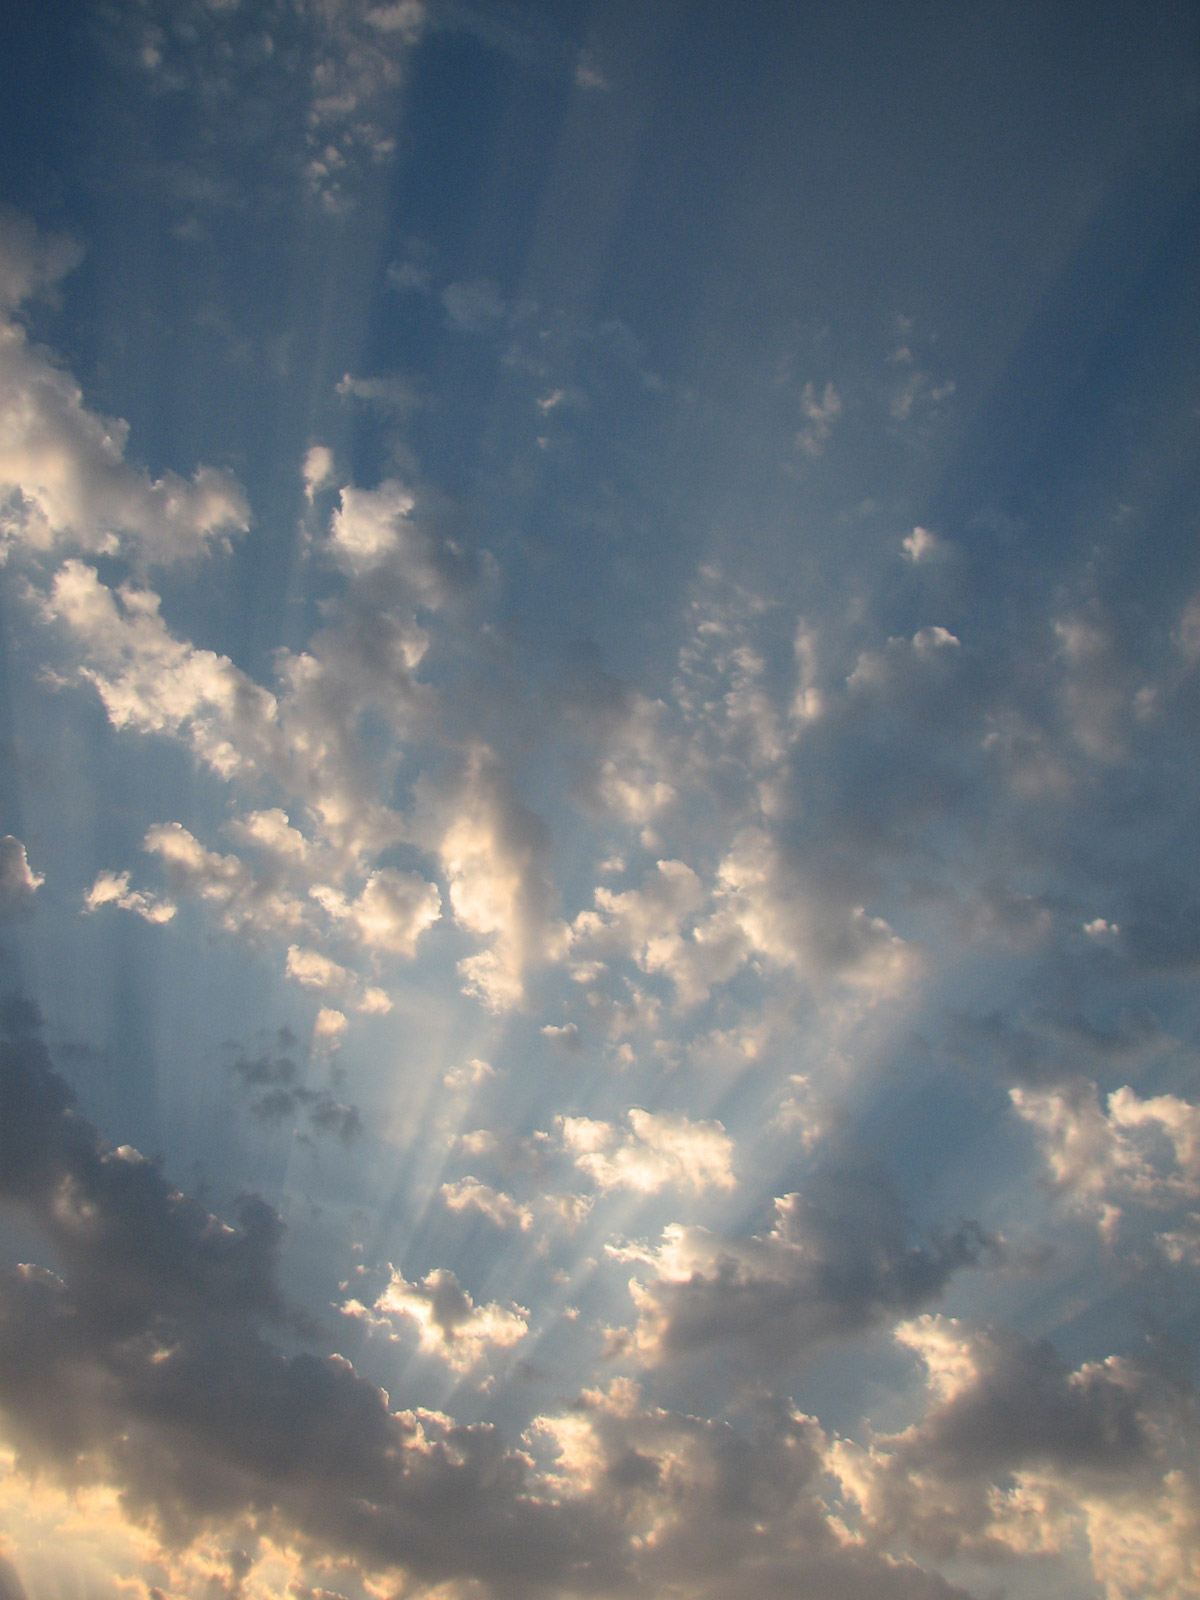 Clouds-Sunrise-33 by